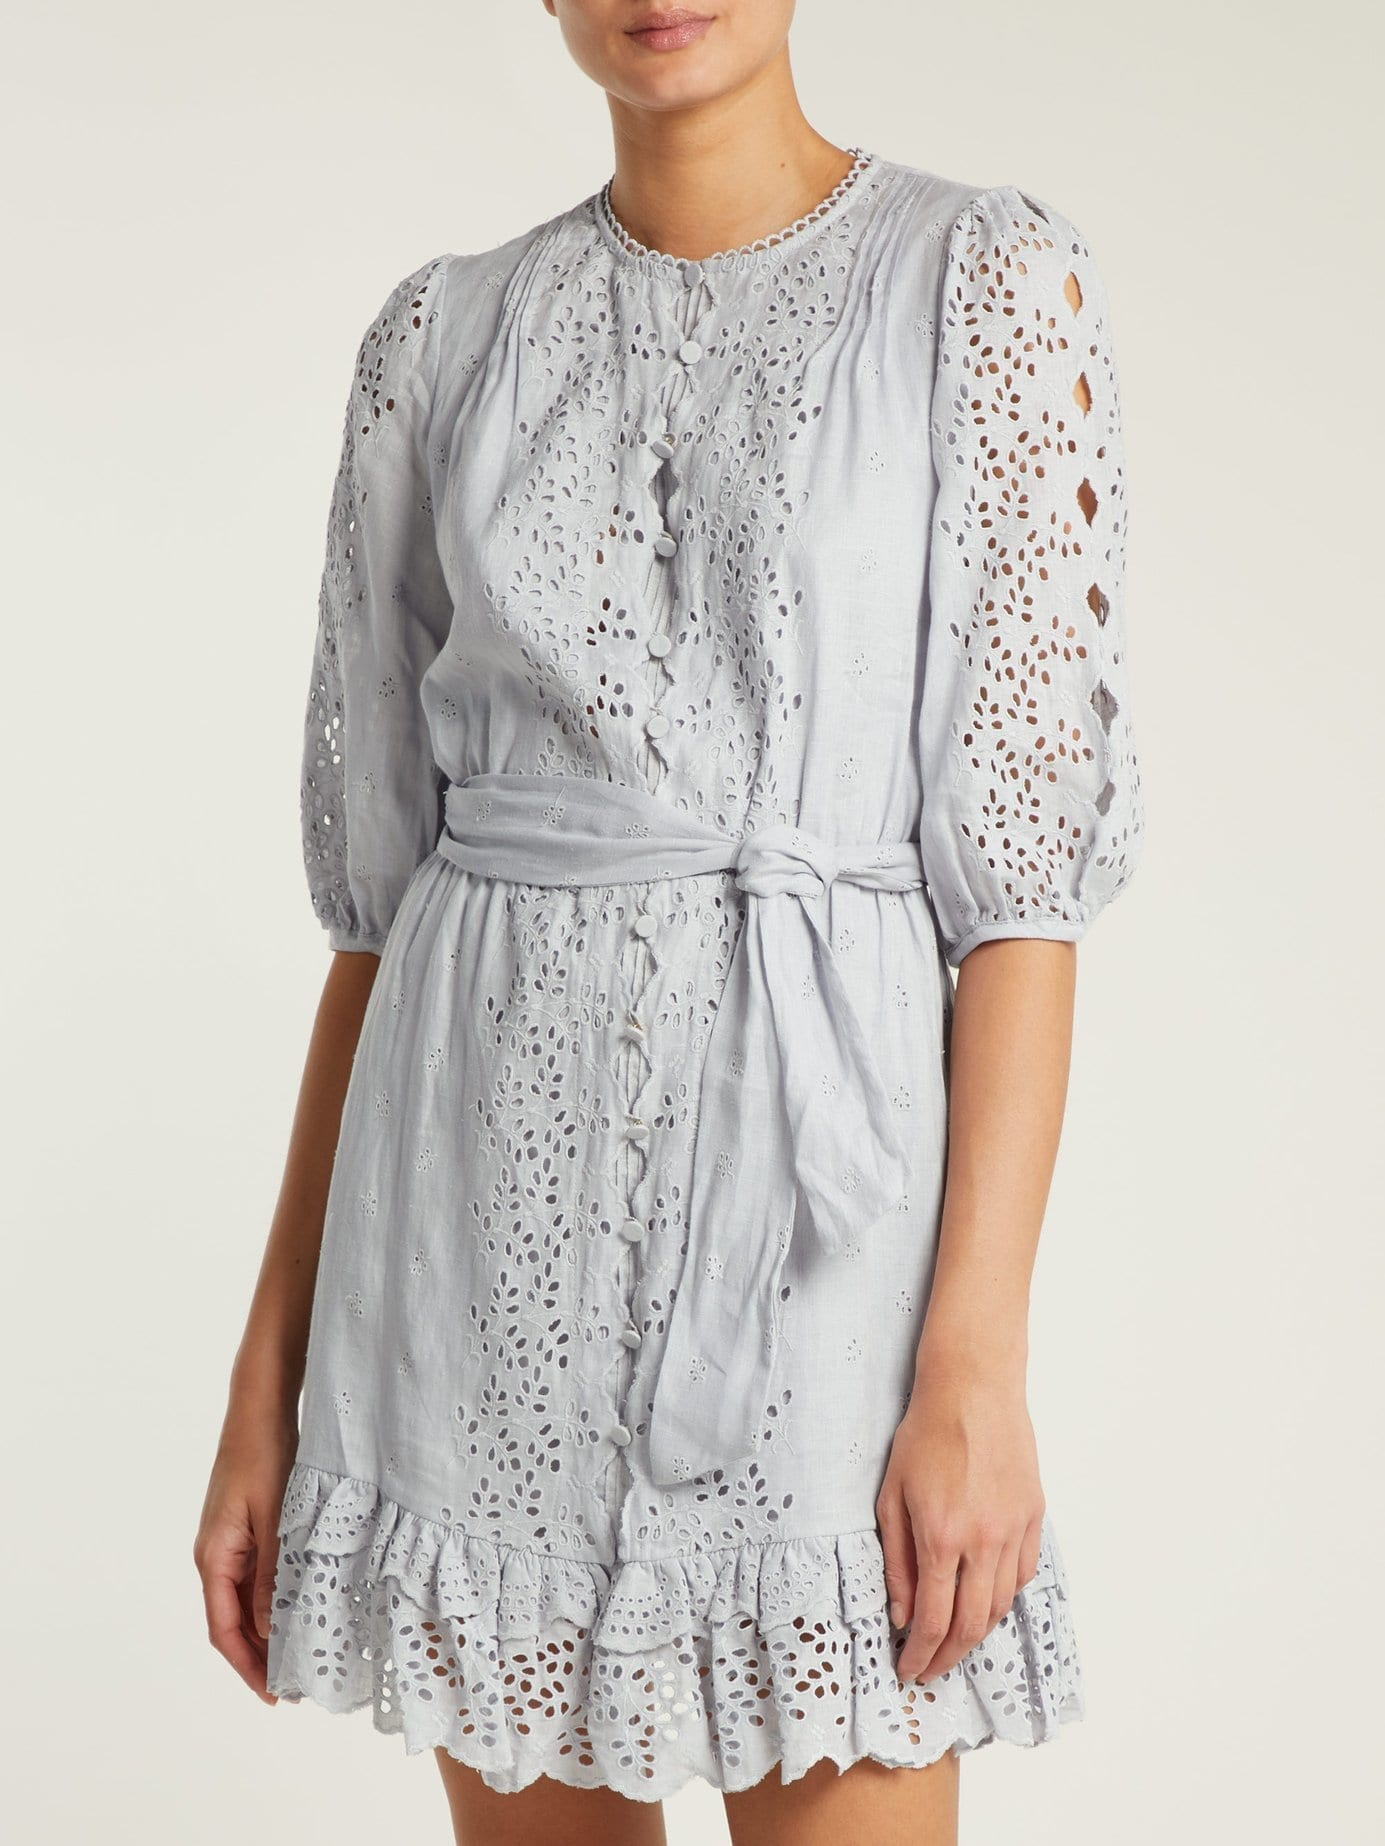 ZIMMERMANN Iris Scallop Lace Linen Light Blue Dress